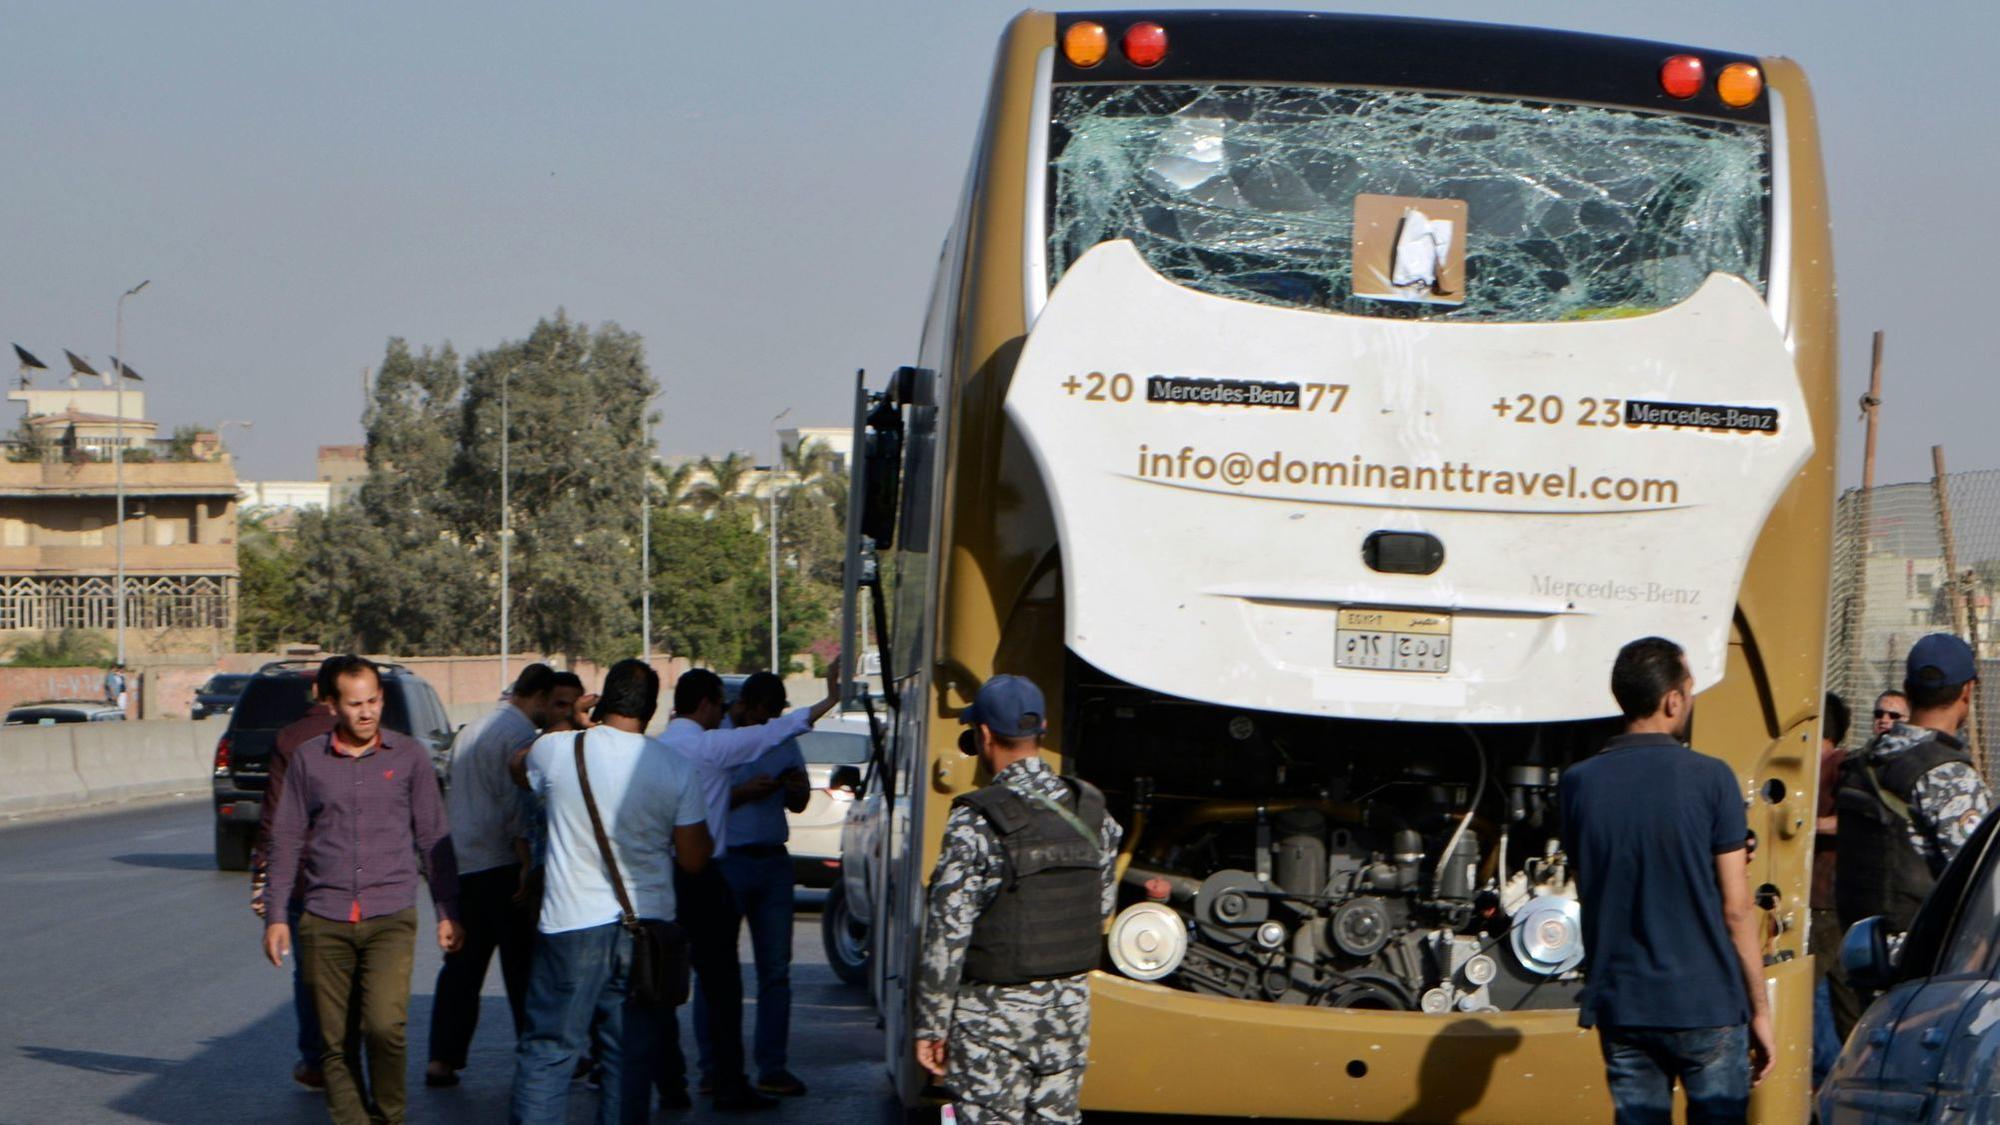 Egypt tourist bus struck by roadside bomb near pyramids, 17 wounded